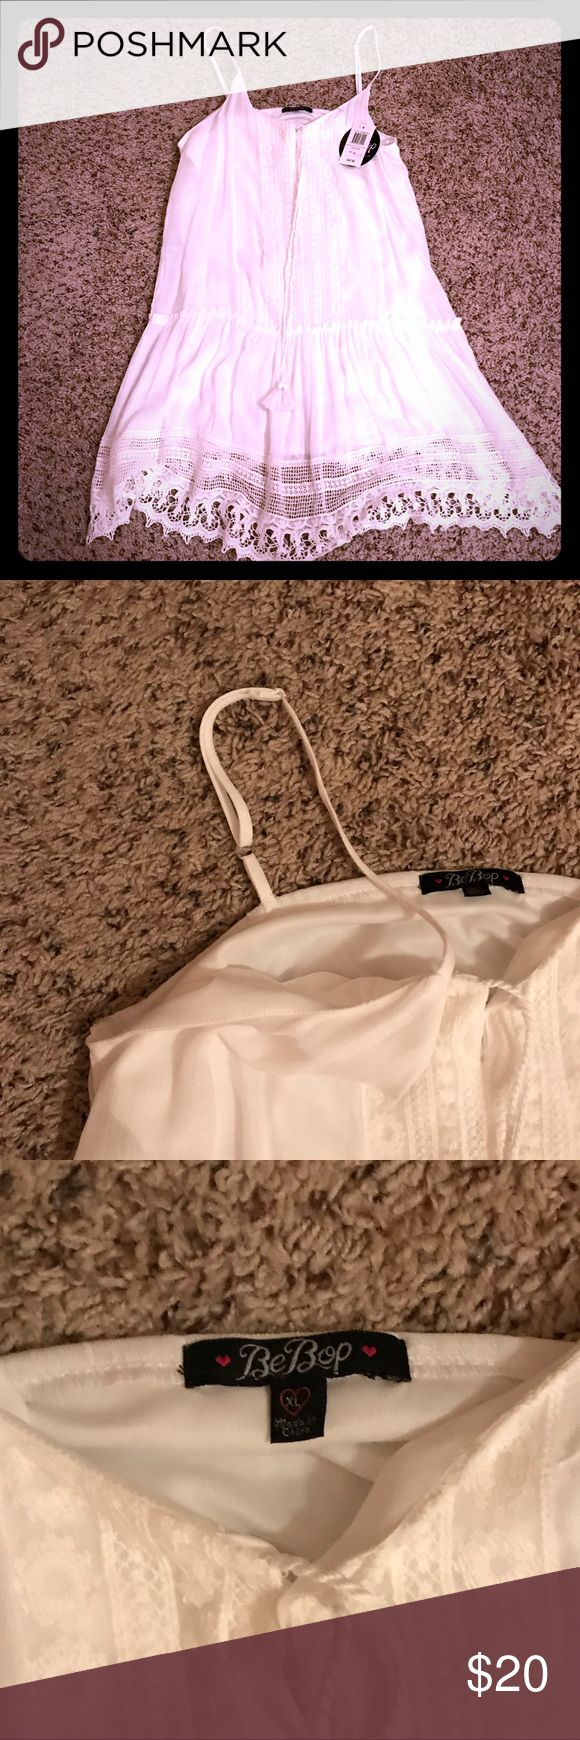 Junior white dress, fully lined BeBop size XL NWT White fully lined detailed dress, size XL NWT. Adjustable straps. 28 inches long from bottom of arm pit measurement. Cotton - polyester blend. So cute for summer 💕💕 BeBop Dresses